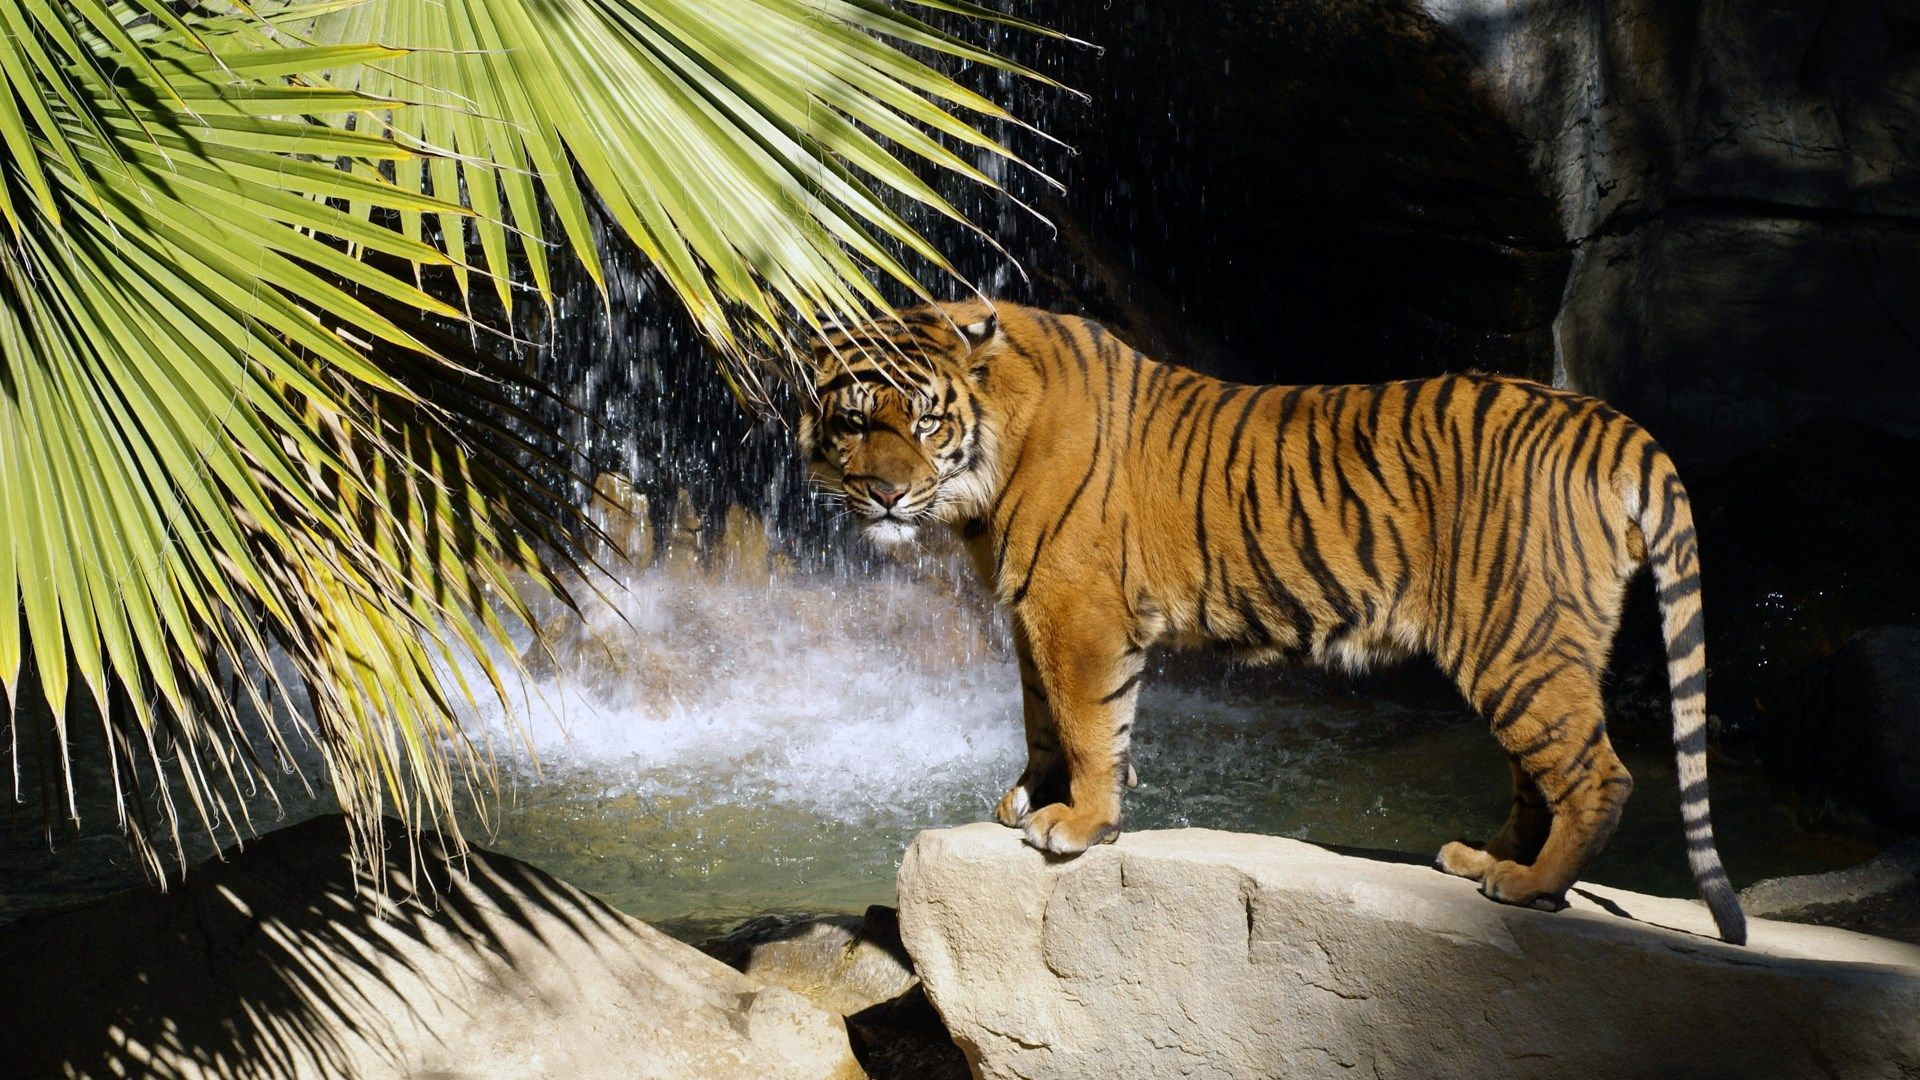 HD Widescreen Wallpapers tiger wallpaper, 1920x1080 (583